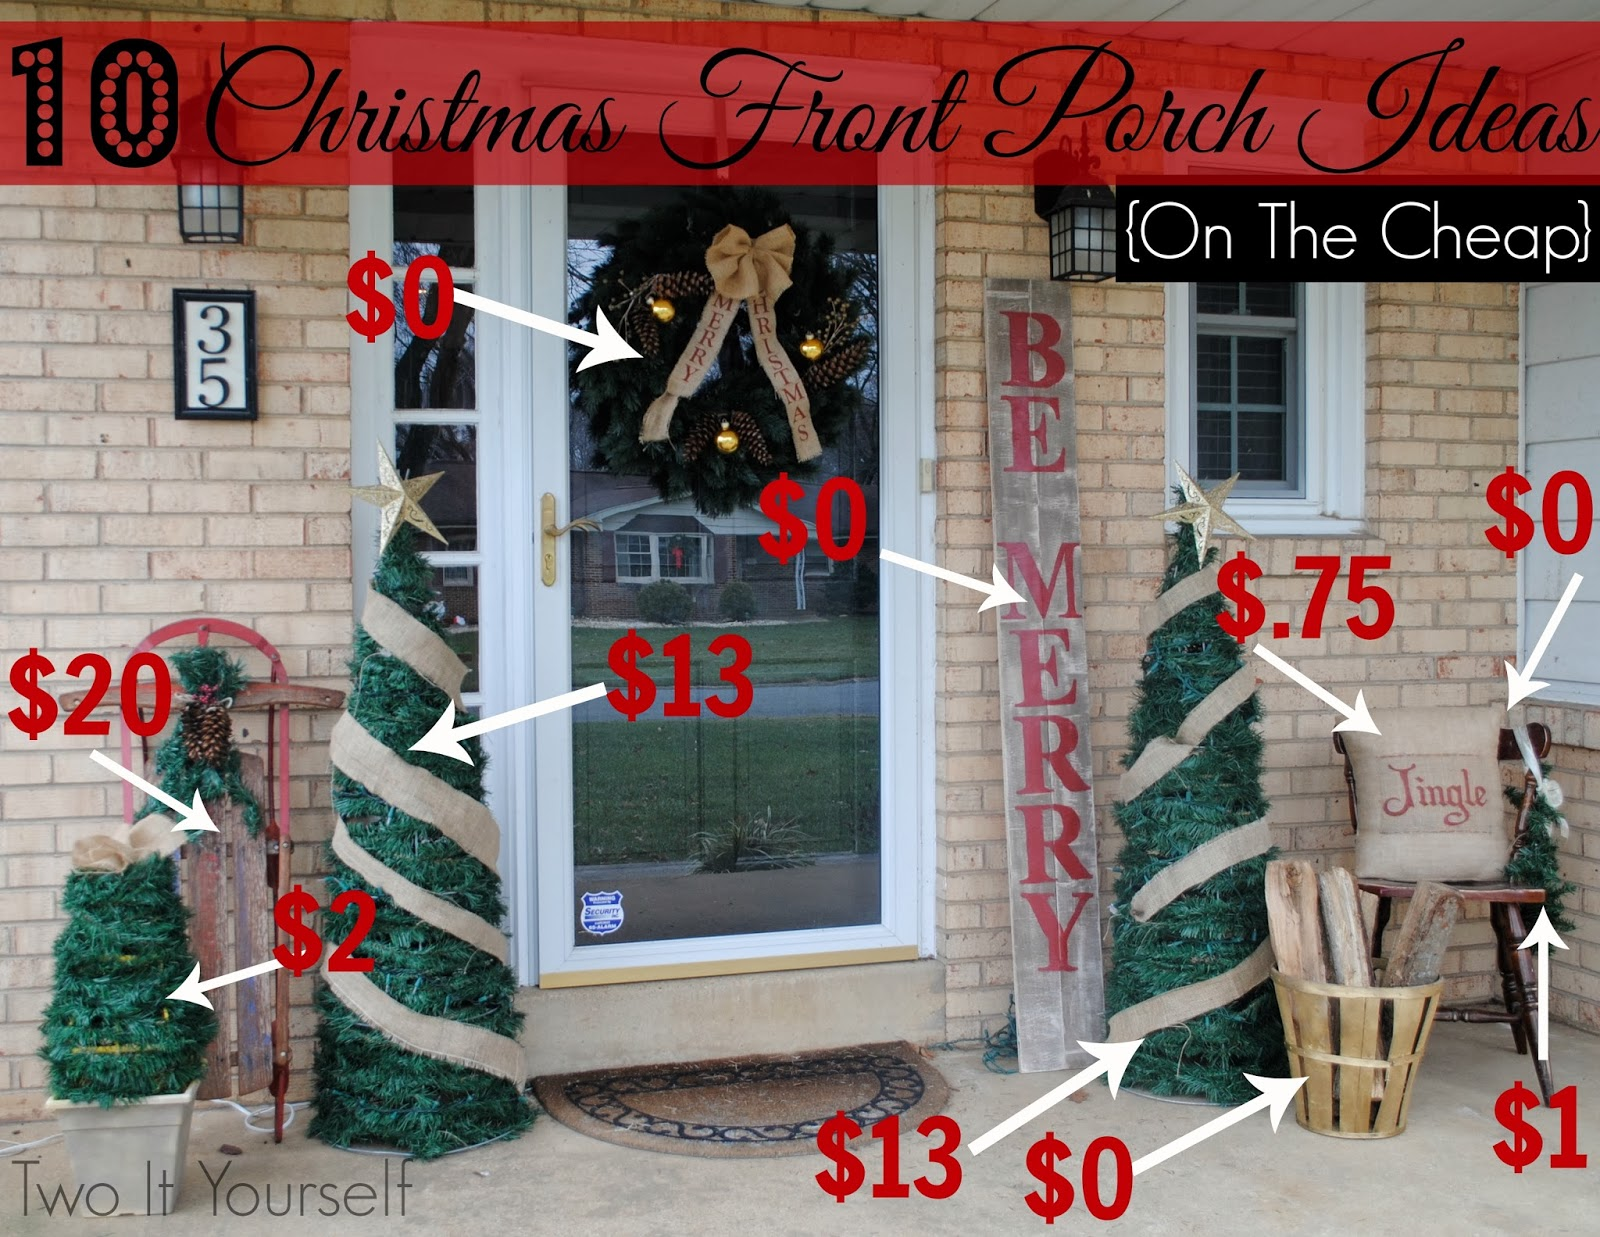 two it yourself 10 christmas front porch ideas on the cheap - Cheap Outside Christmas Decorations